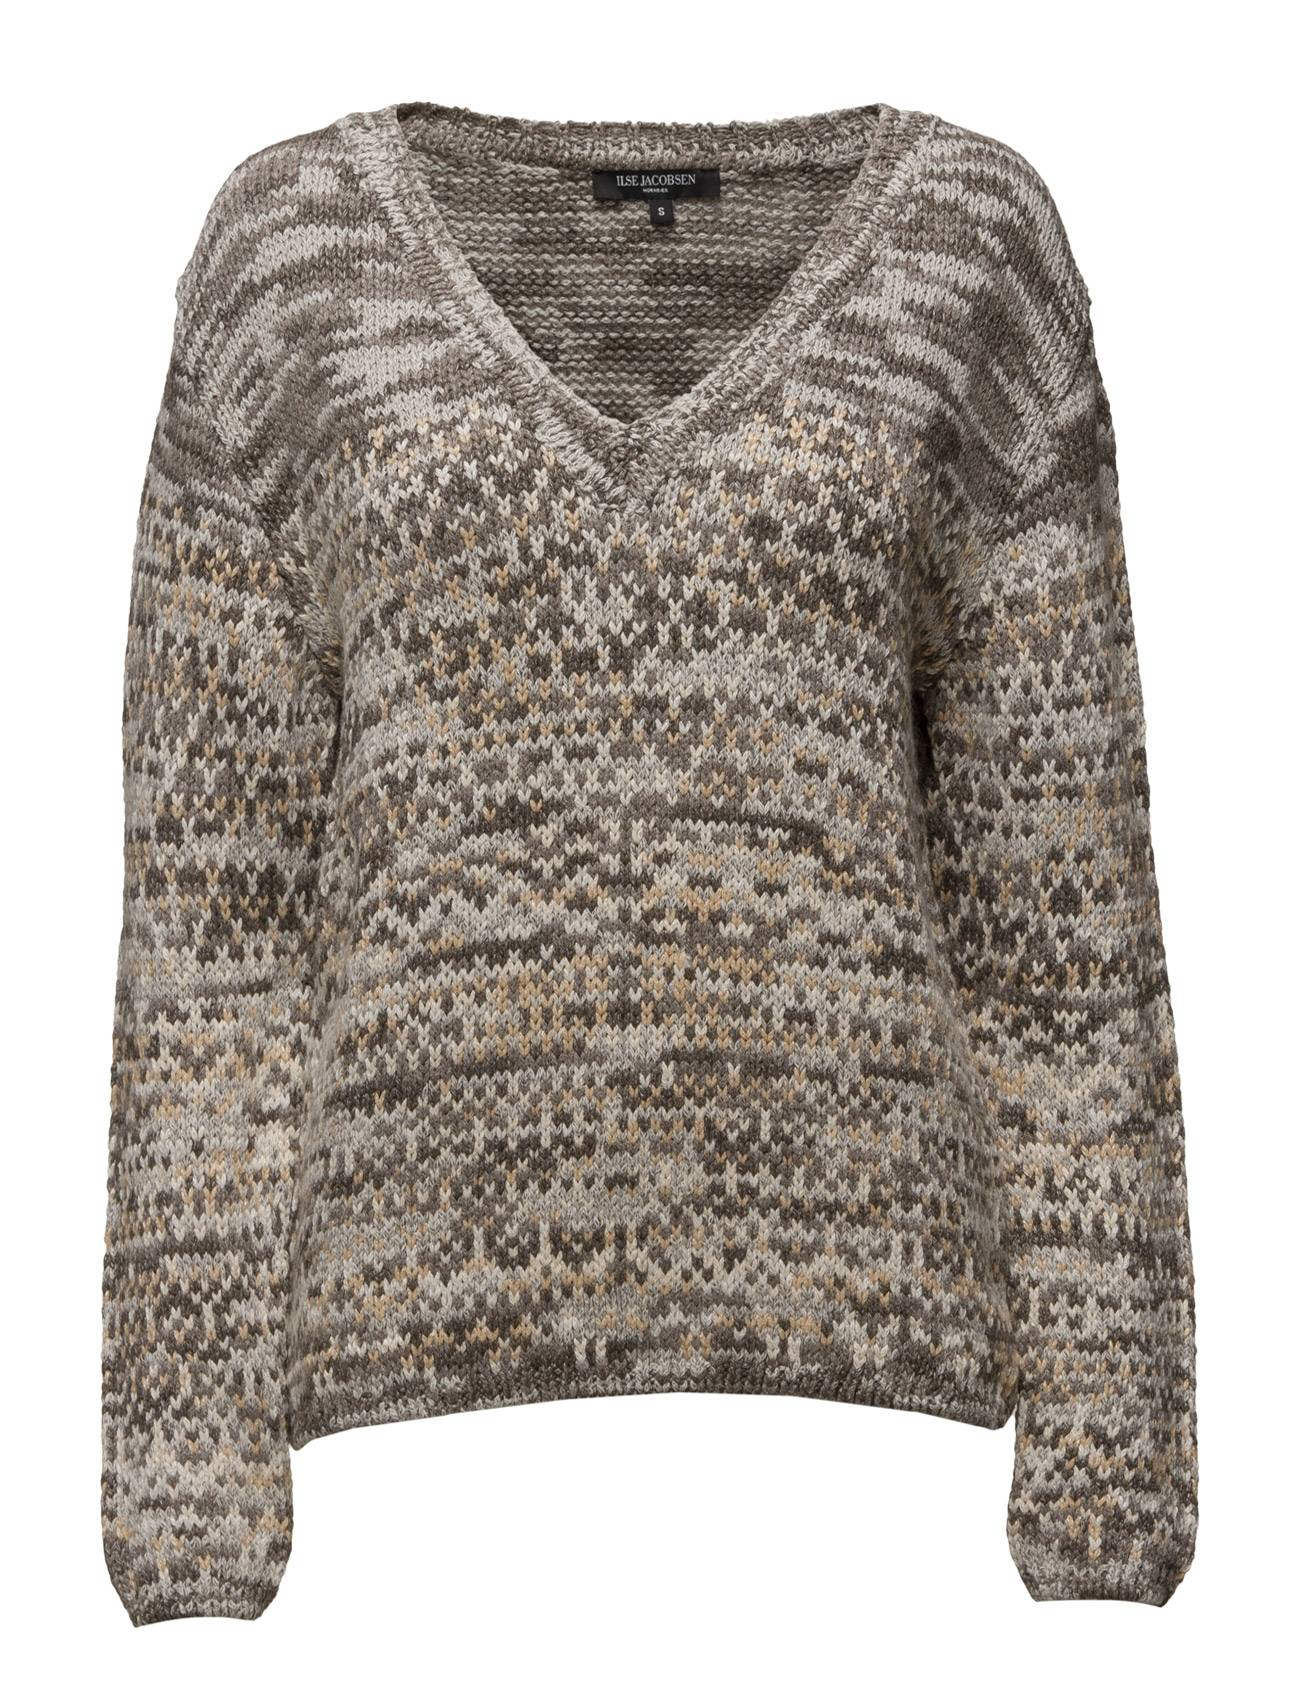 Ilse Jacobsen Womens Knitted Sweater